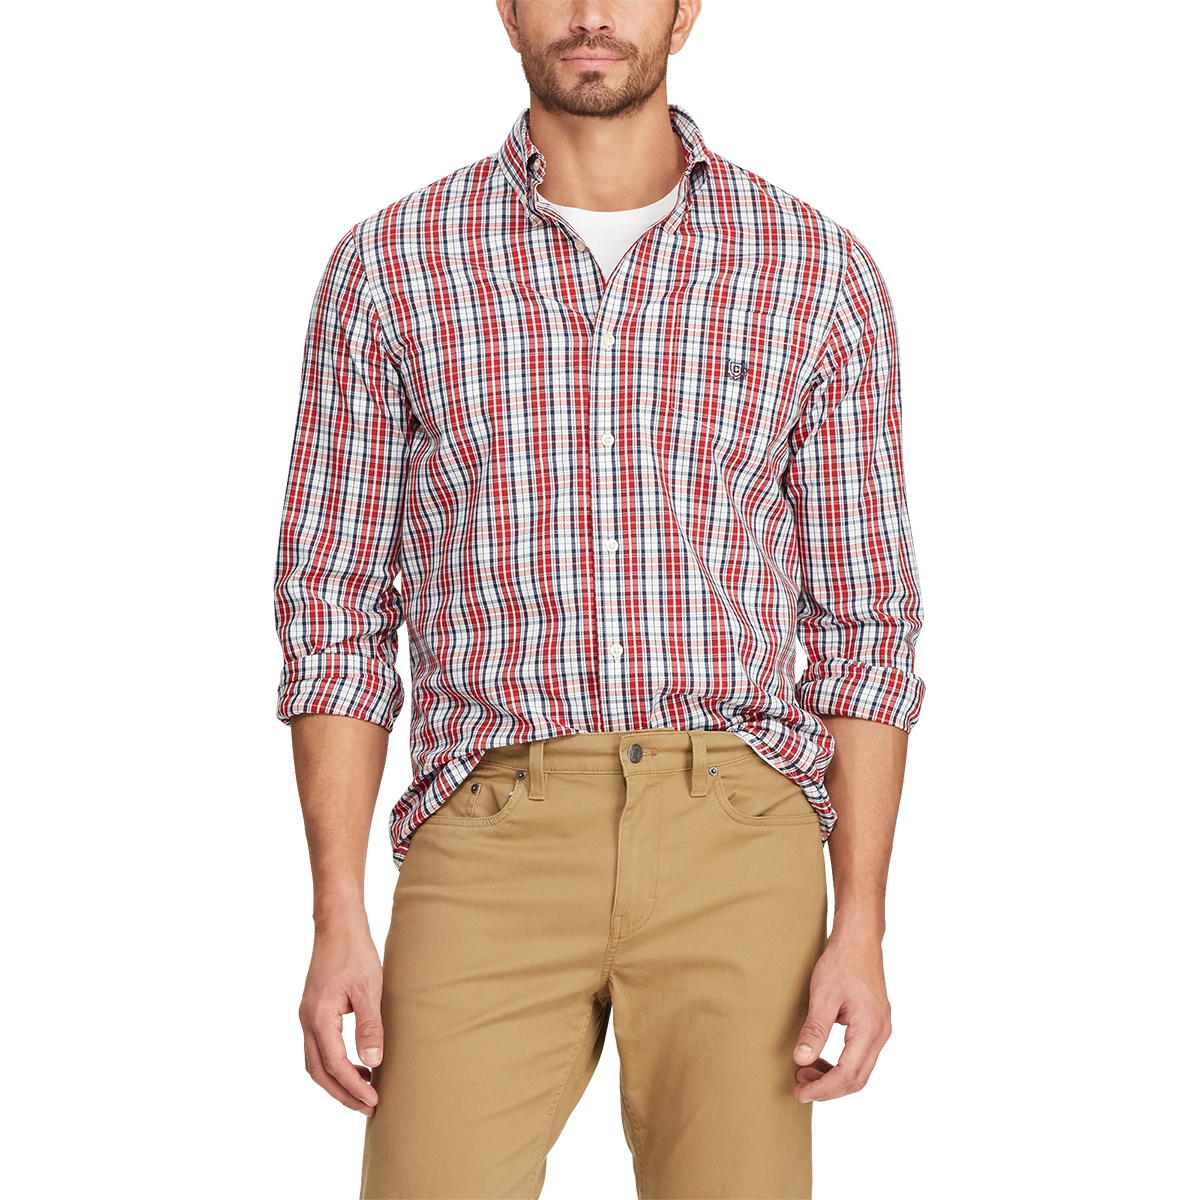 Chaps Men's Easy-Care Stretch Woven Long-Sleeve Shirt - Red, M